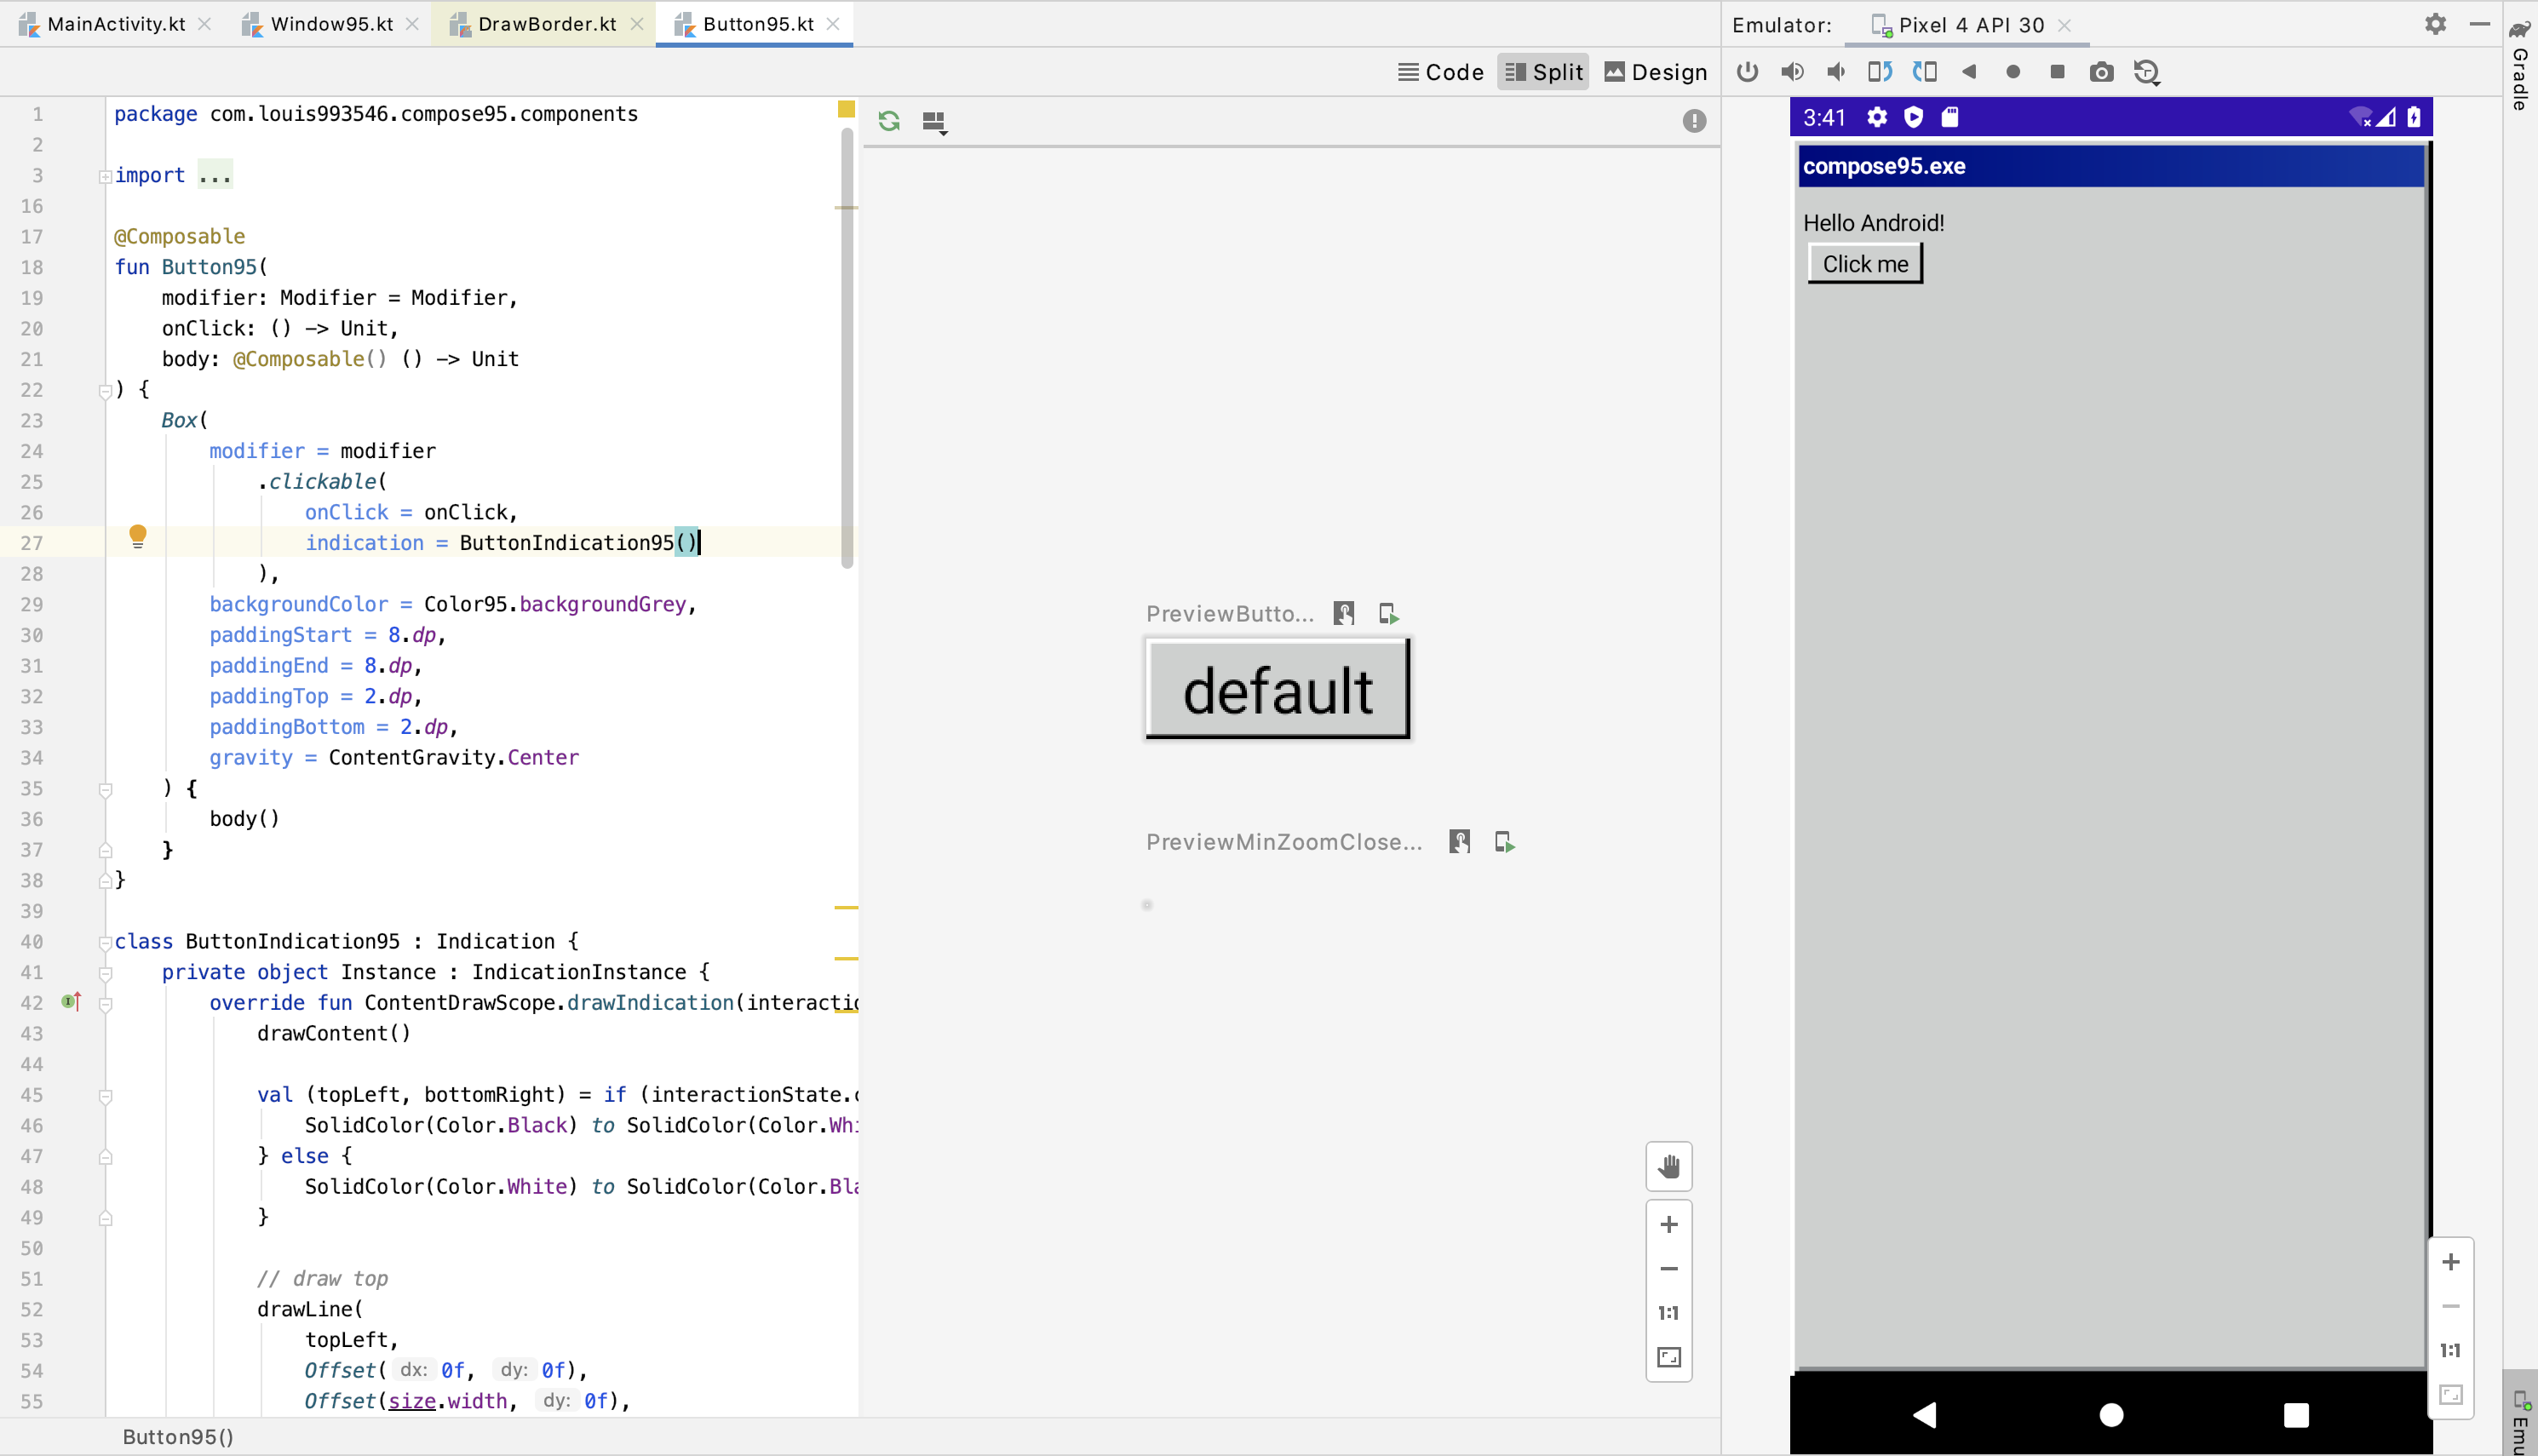 Screenshot of Android Studio, which has code of Button95, Preview of Button95, and an emulator showing what it looks like